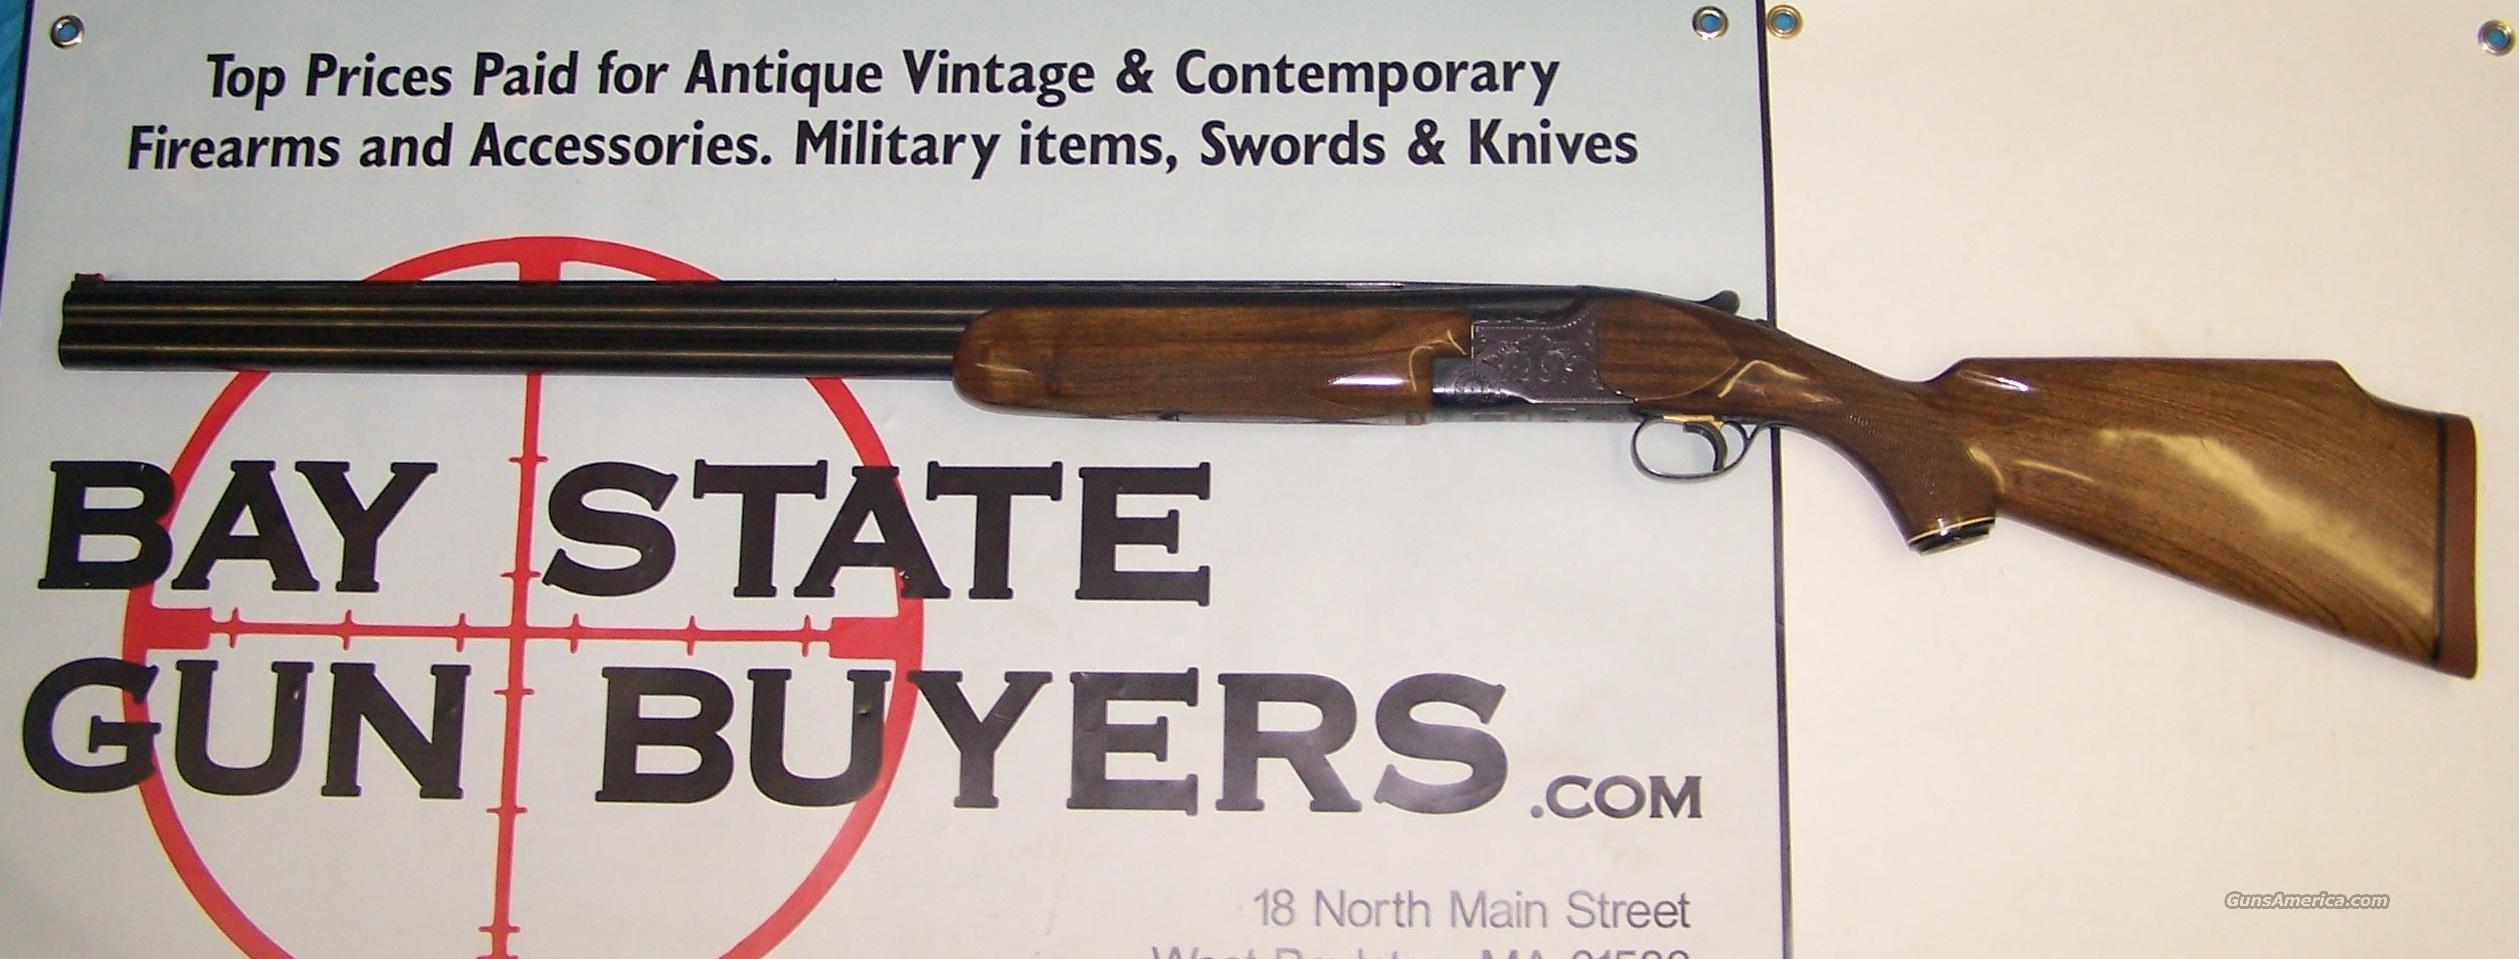 "Charles Daly MIROKU 30"" O/U Superior Grade Shotgun 12 Gauge  Guns > Shotguns > Charles Daly Shotguns > Over/Under"